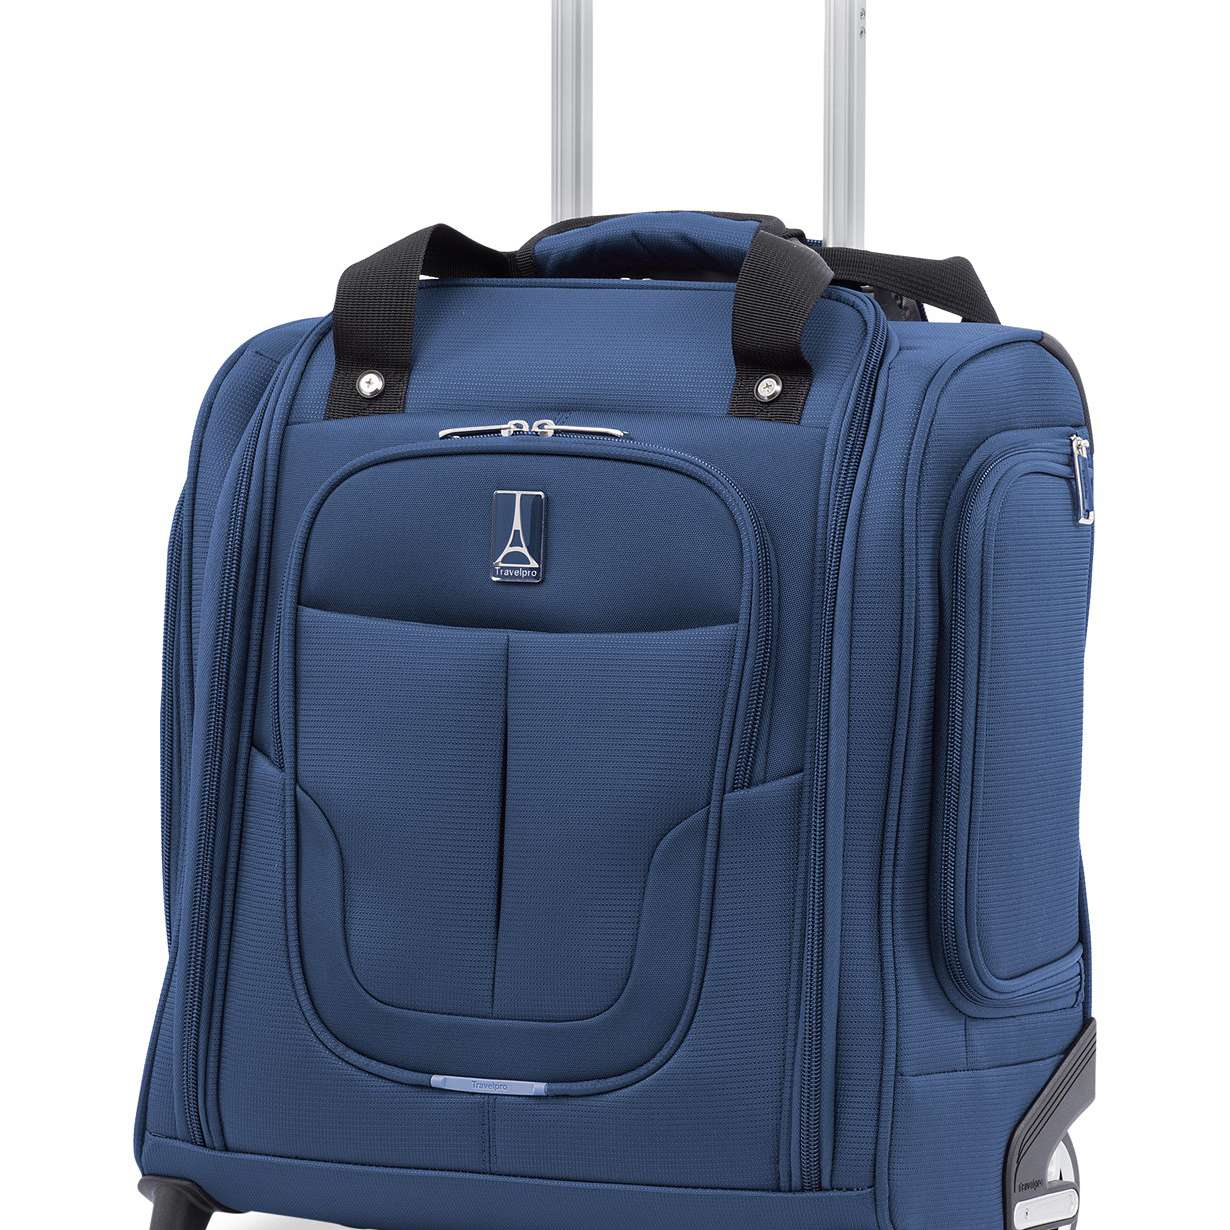 Best Underseater  Travelpro Walkabout 4 Under-The-Seat Bag with USB Port 23c014baf6c06